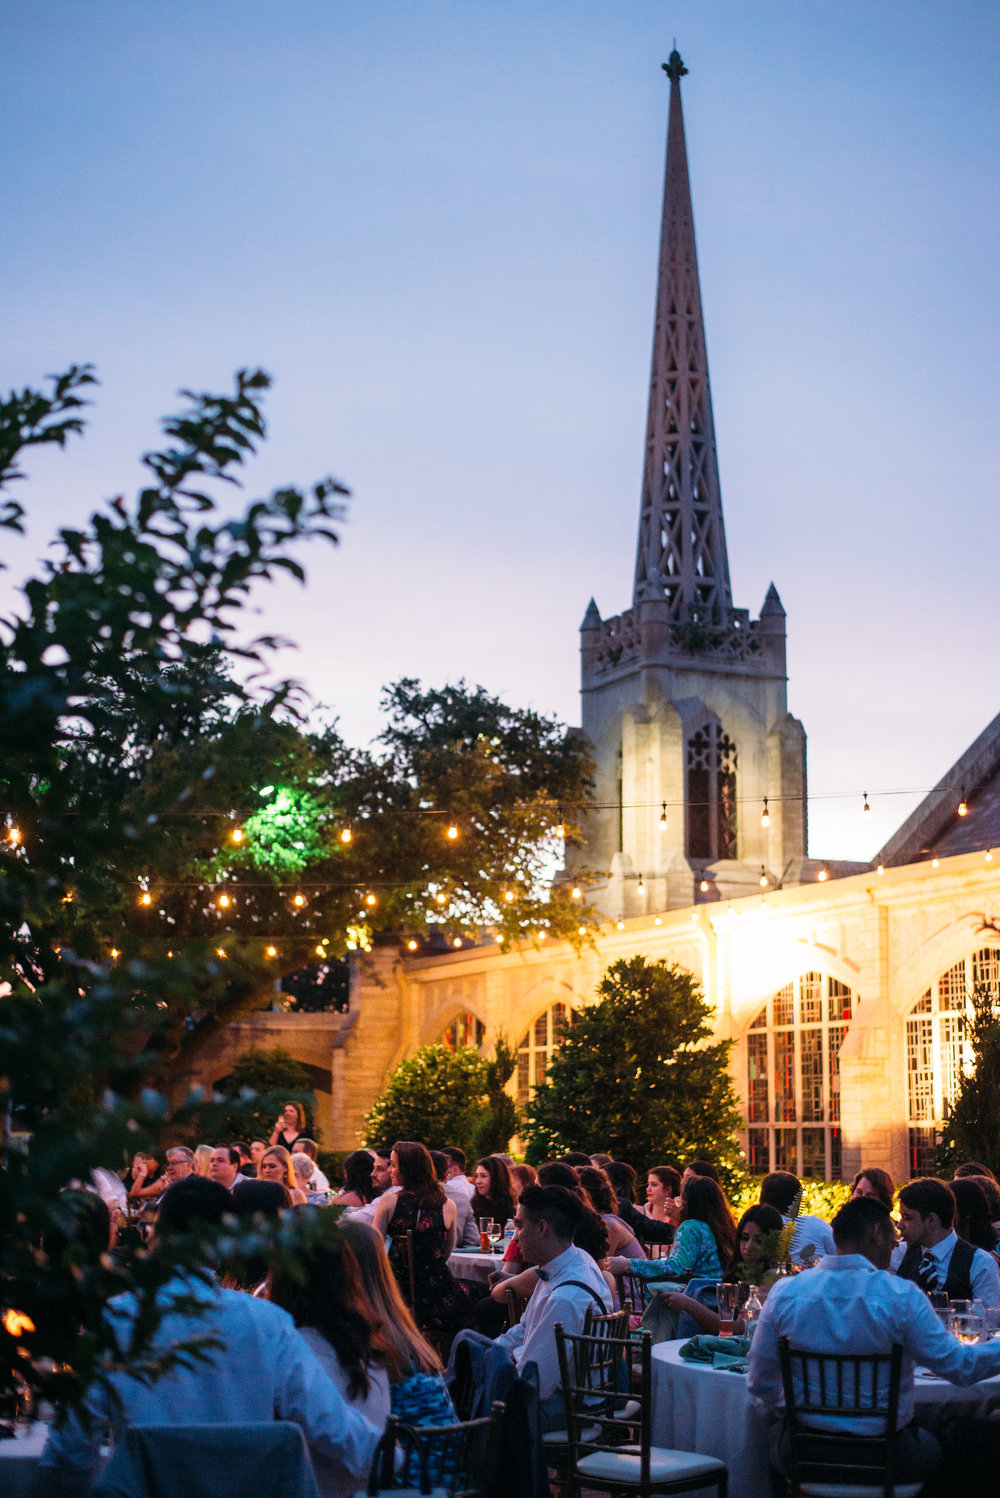 BelltowerChapelGarden-OutsideReception-AggieWedding-44.jpg